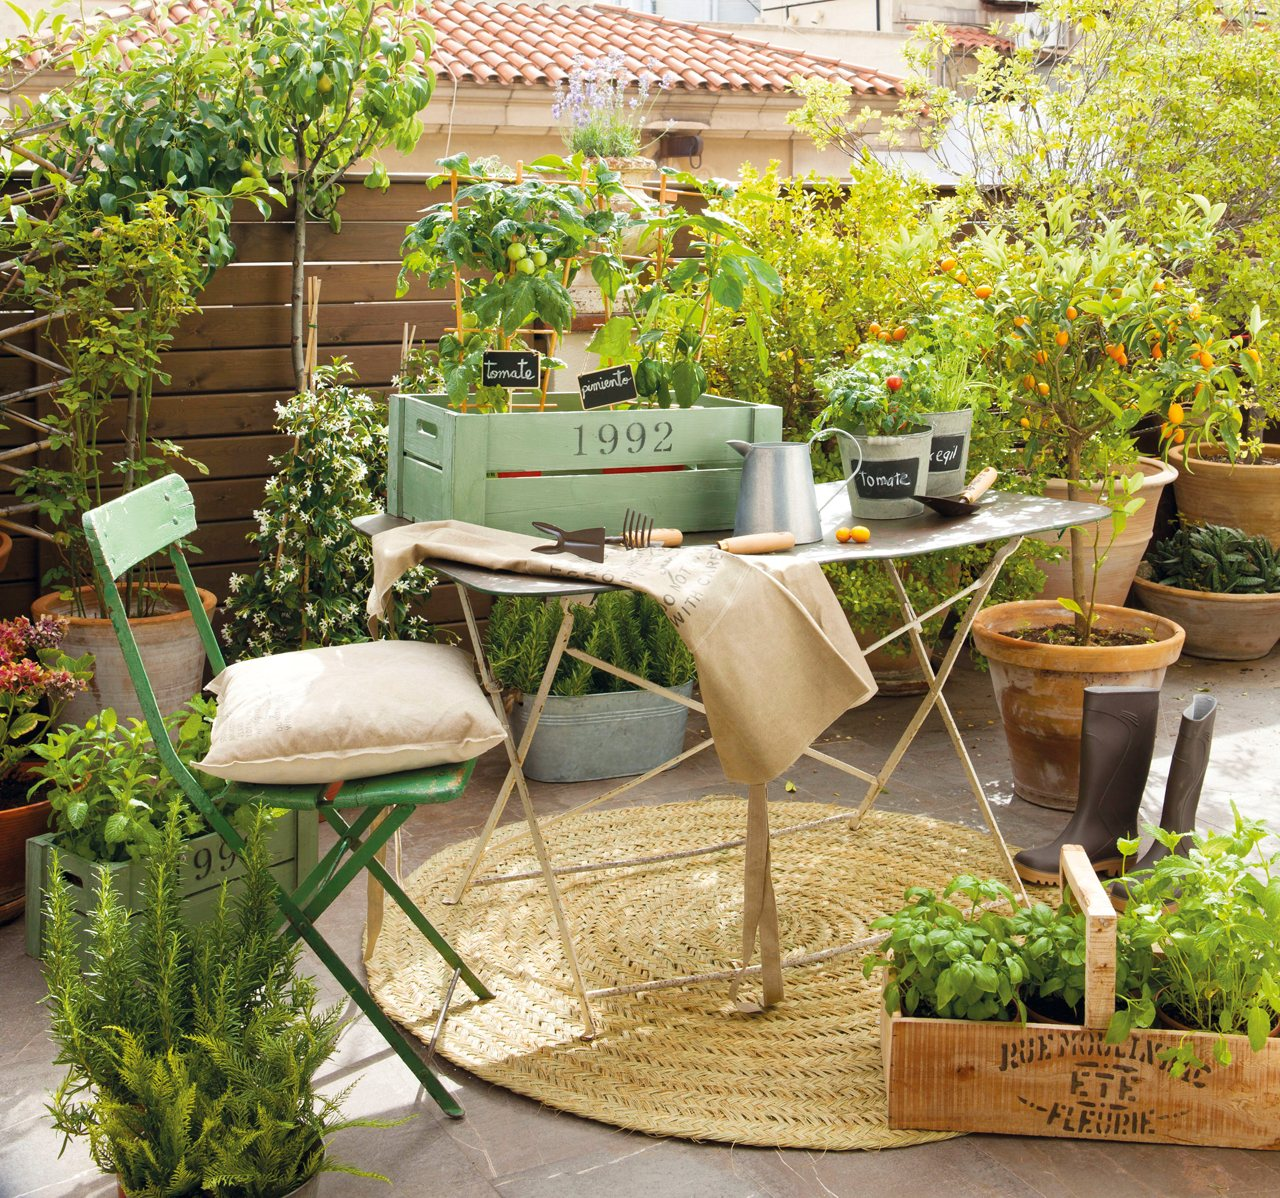 Ideas para decorar una terraza en verano - Como decorar un patio exterior ...